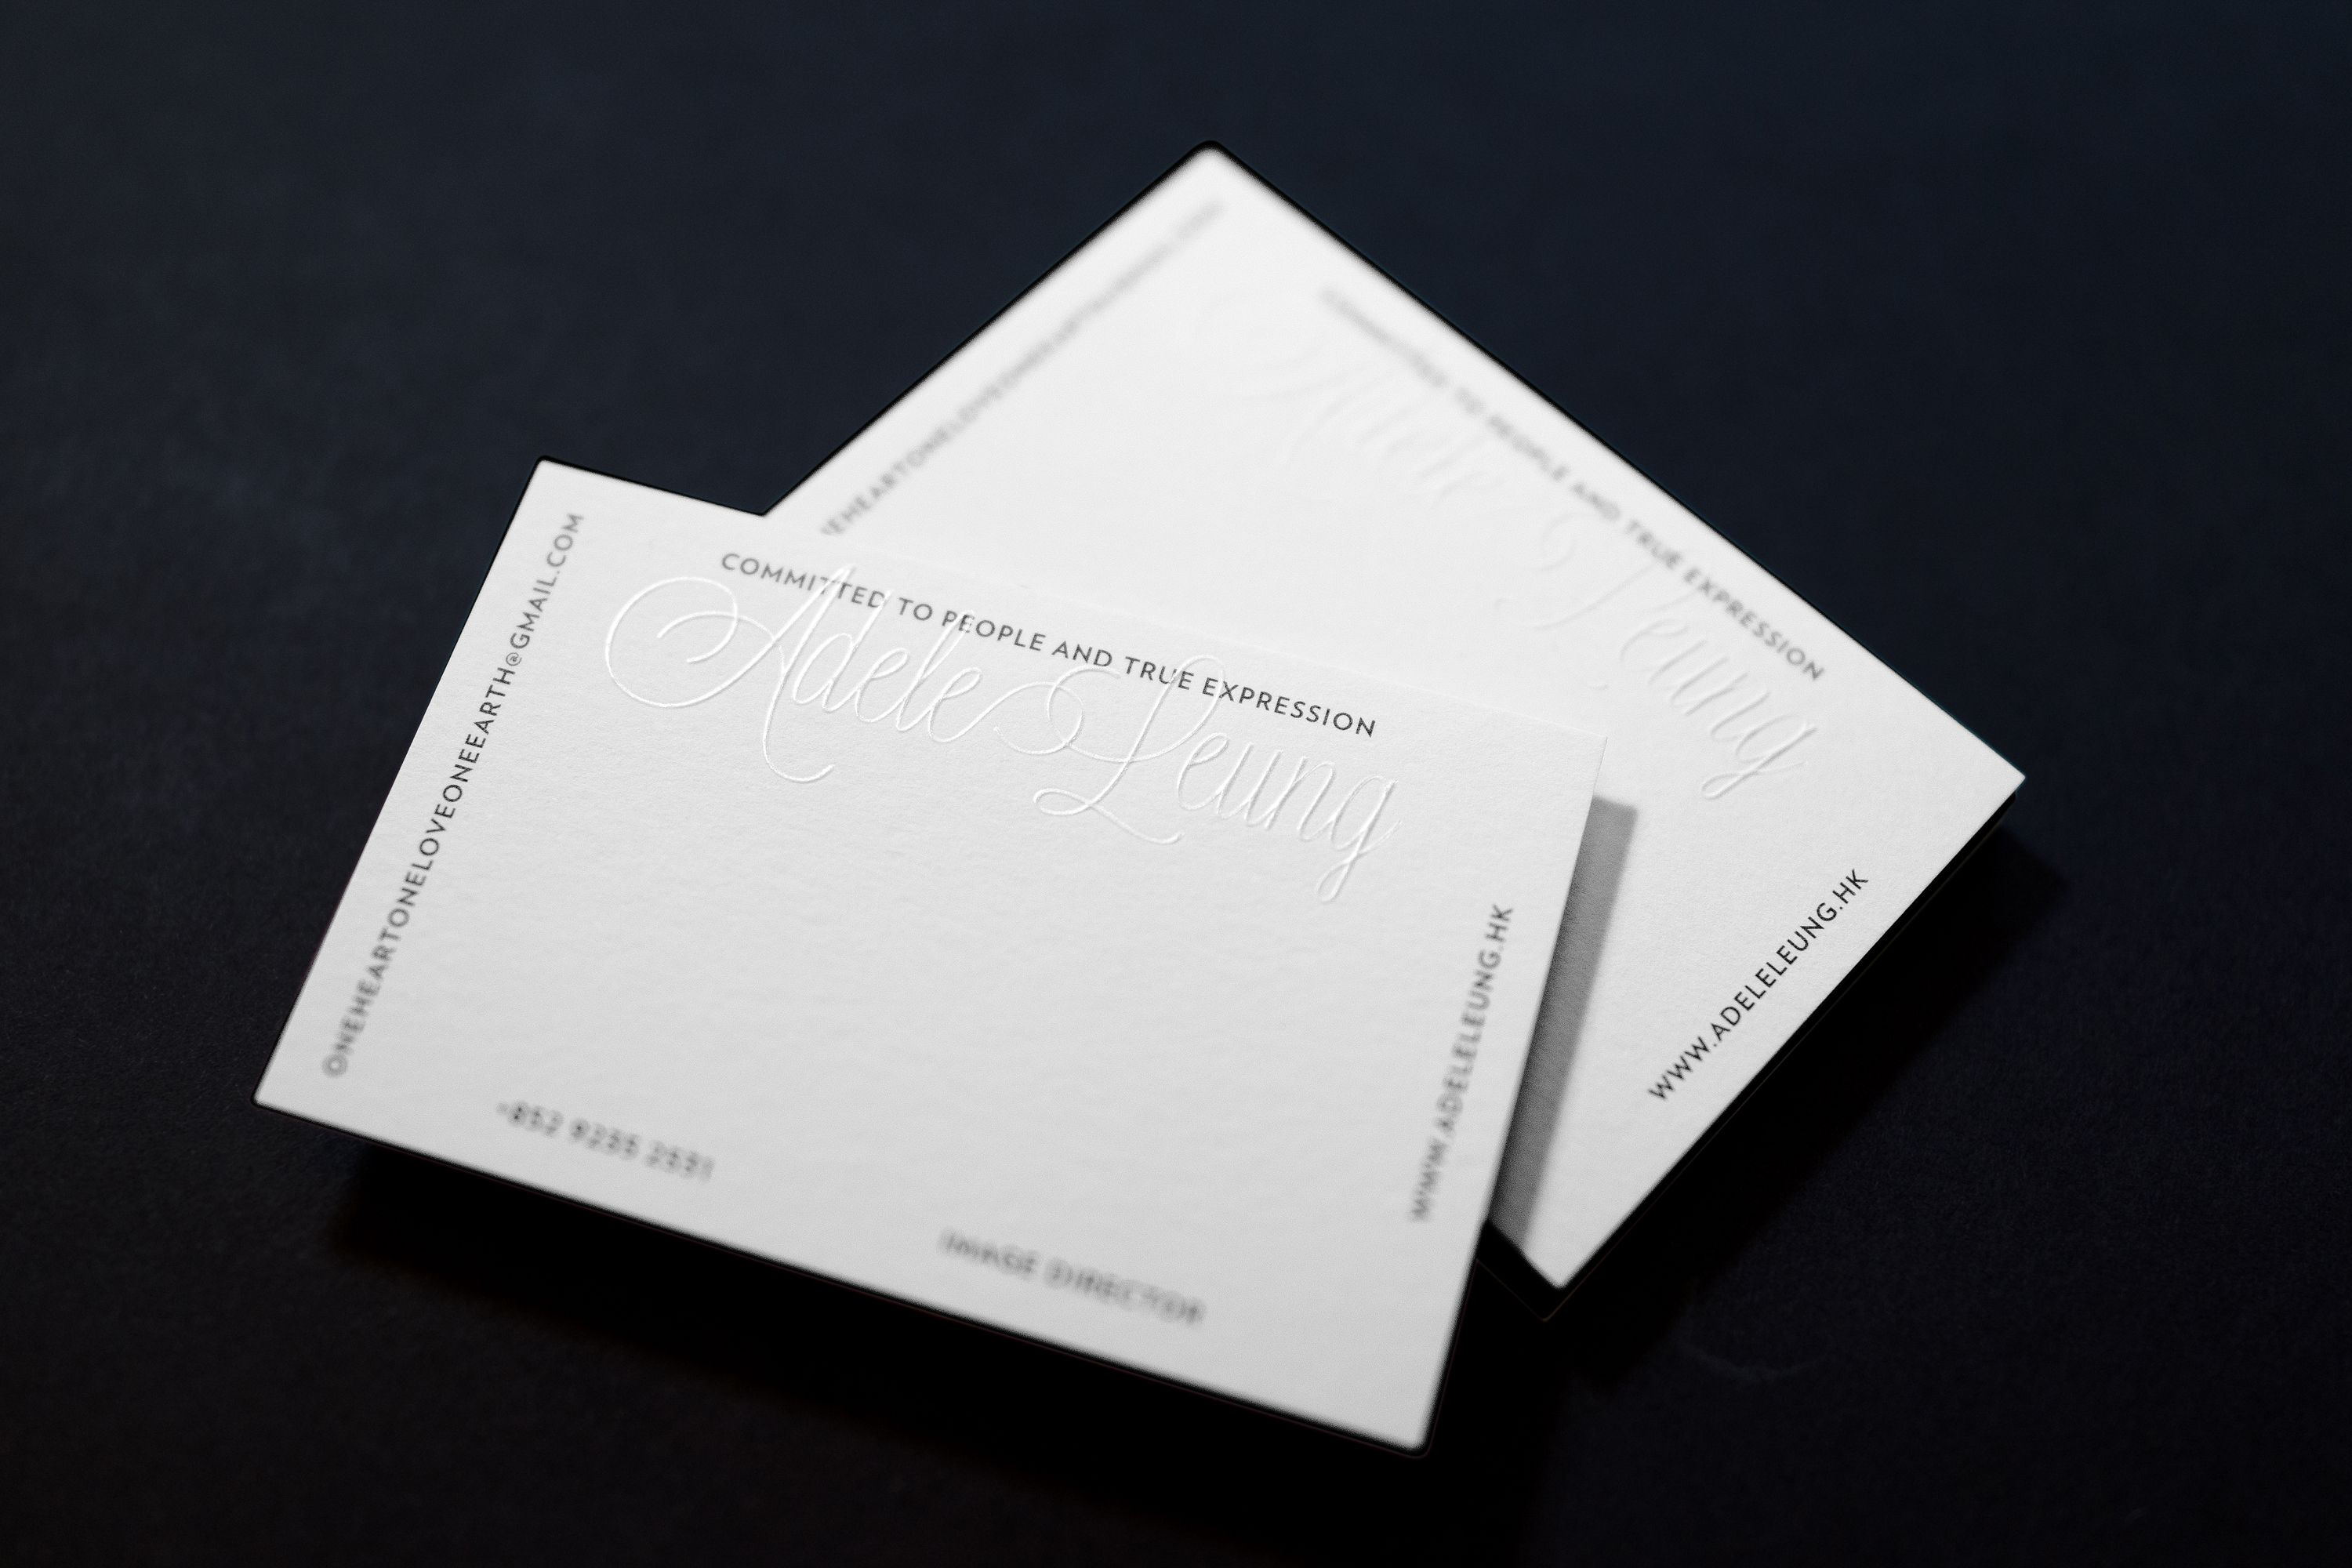 Adele Leung blind embossed business card designed by Studiomuch